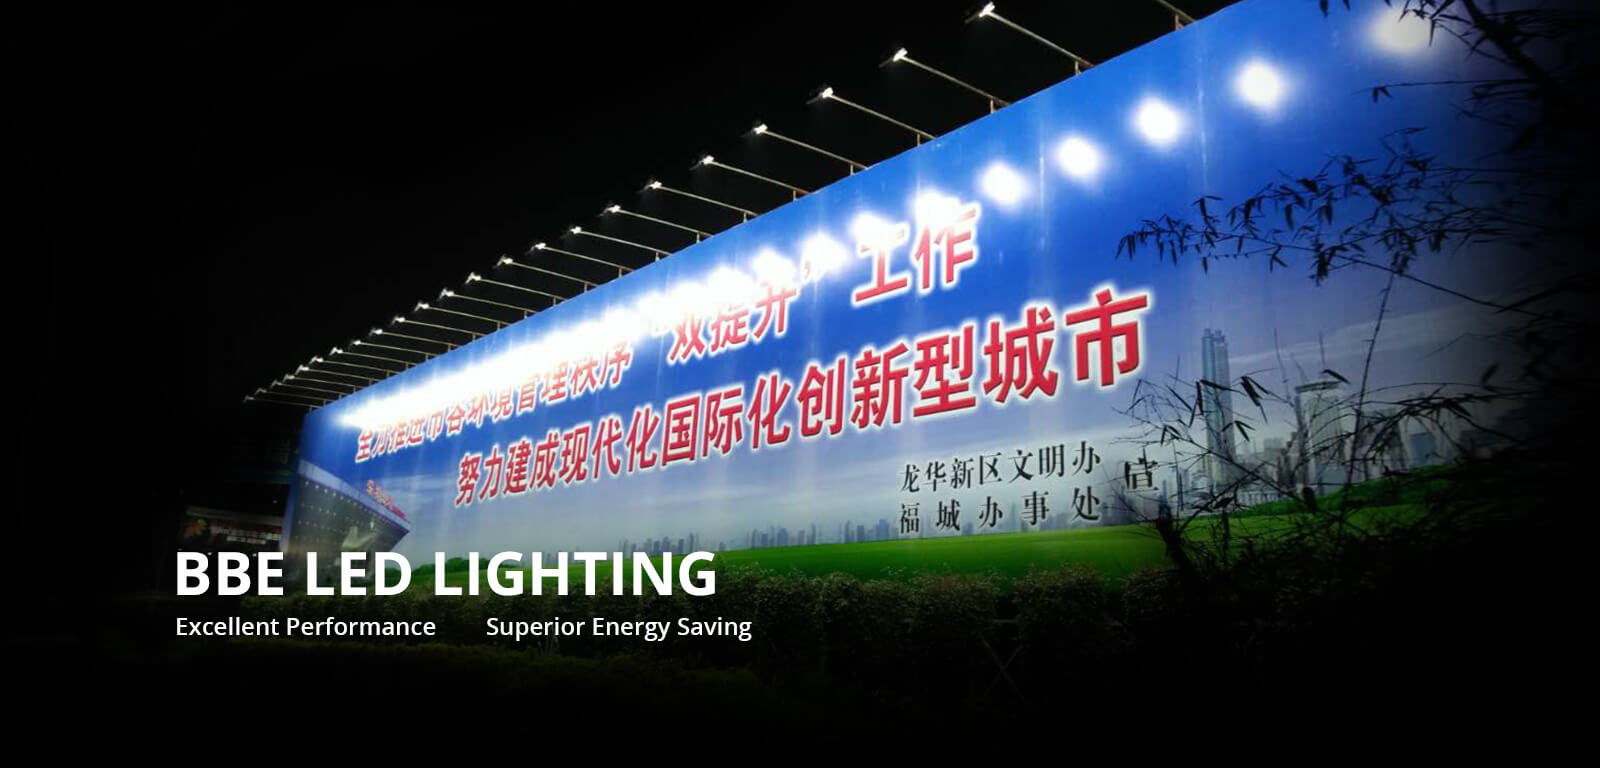 BBE LED LIGHTING YOUR WAY AHEAD